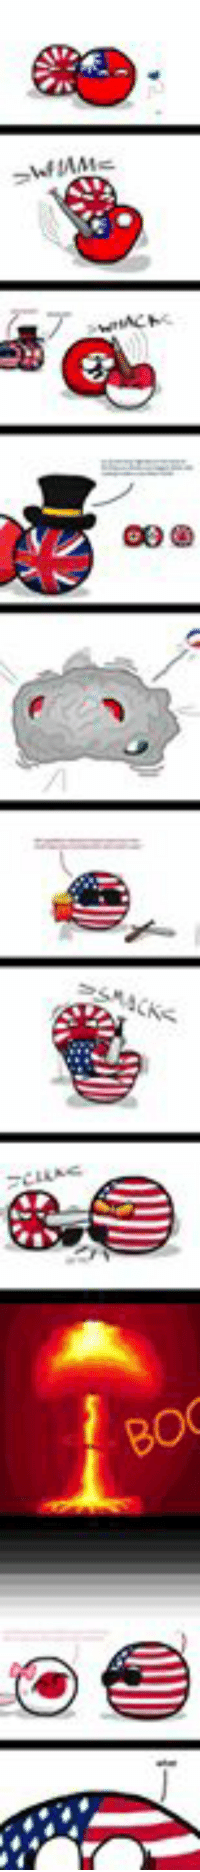 Http, USABall, and Experience: 000  O For baka gaijin:  http://img.memecdn.com/traumatic-experiences_o_3136425.jpg  ~Shitlord